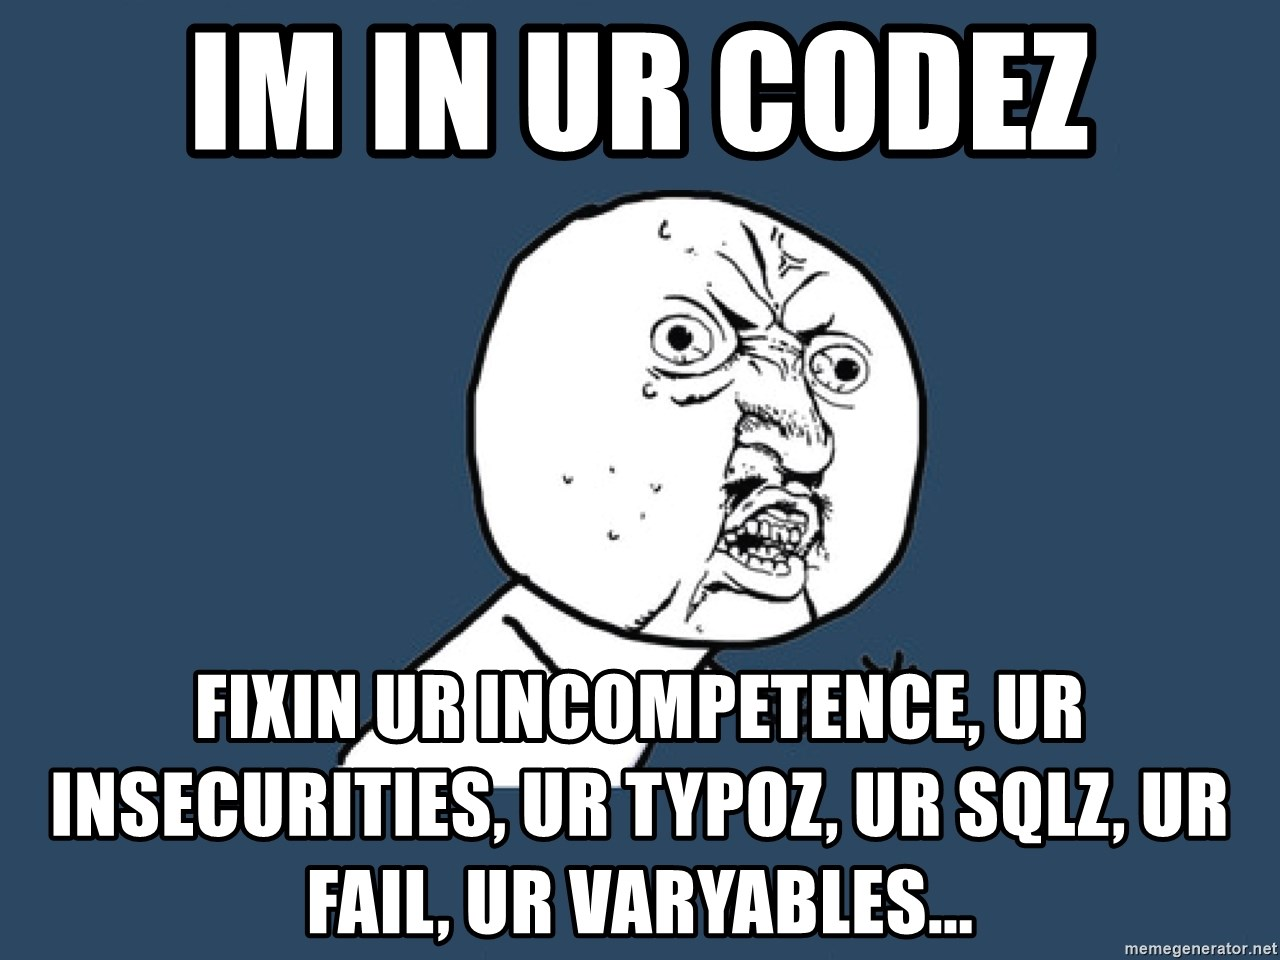 Y U No - IM IN UR CODEZ FIXIN UR INCOMPETENCE, UR INSECURITIES, UR TYPOZ, UR SQLZ, UR FAIL, UR VARYABLES...